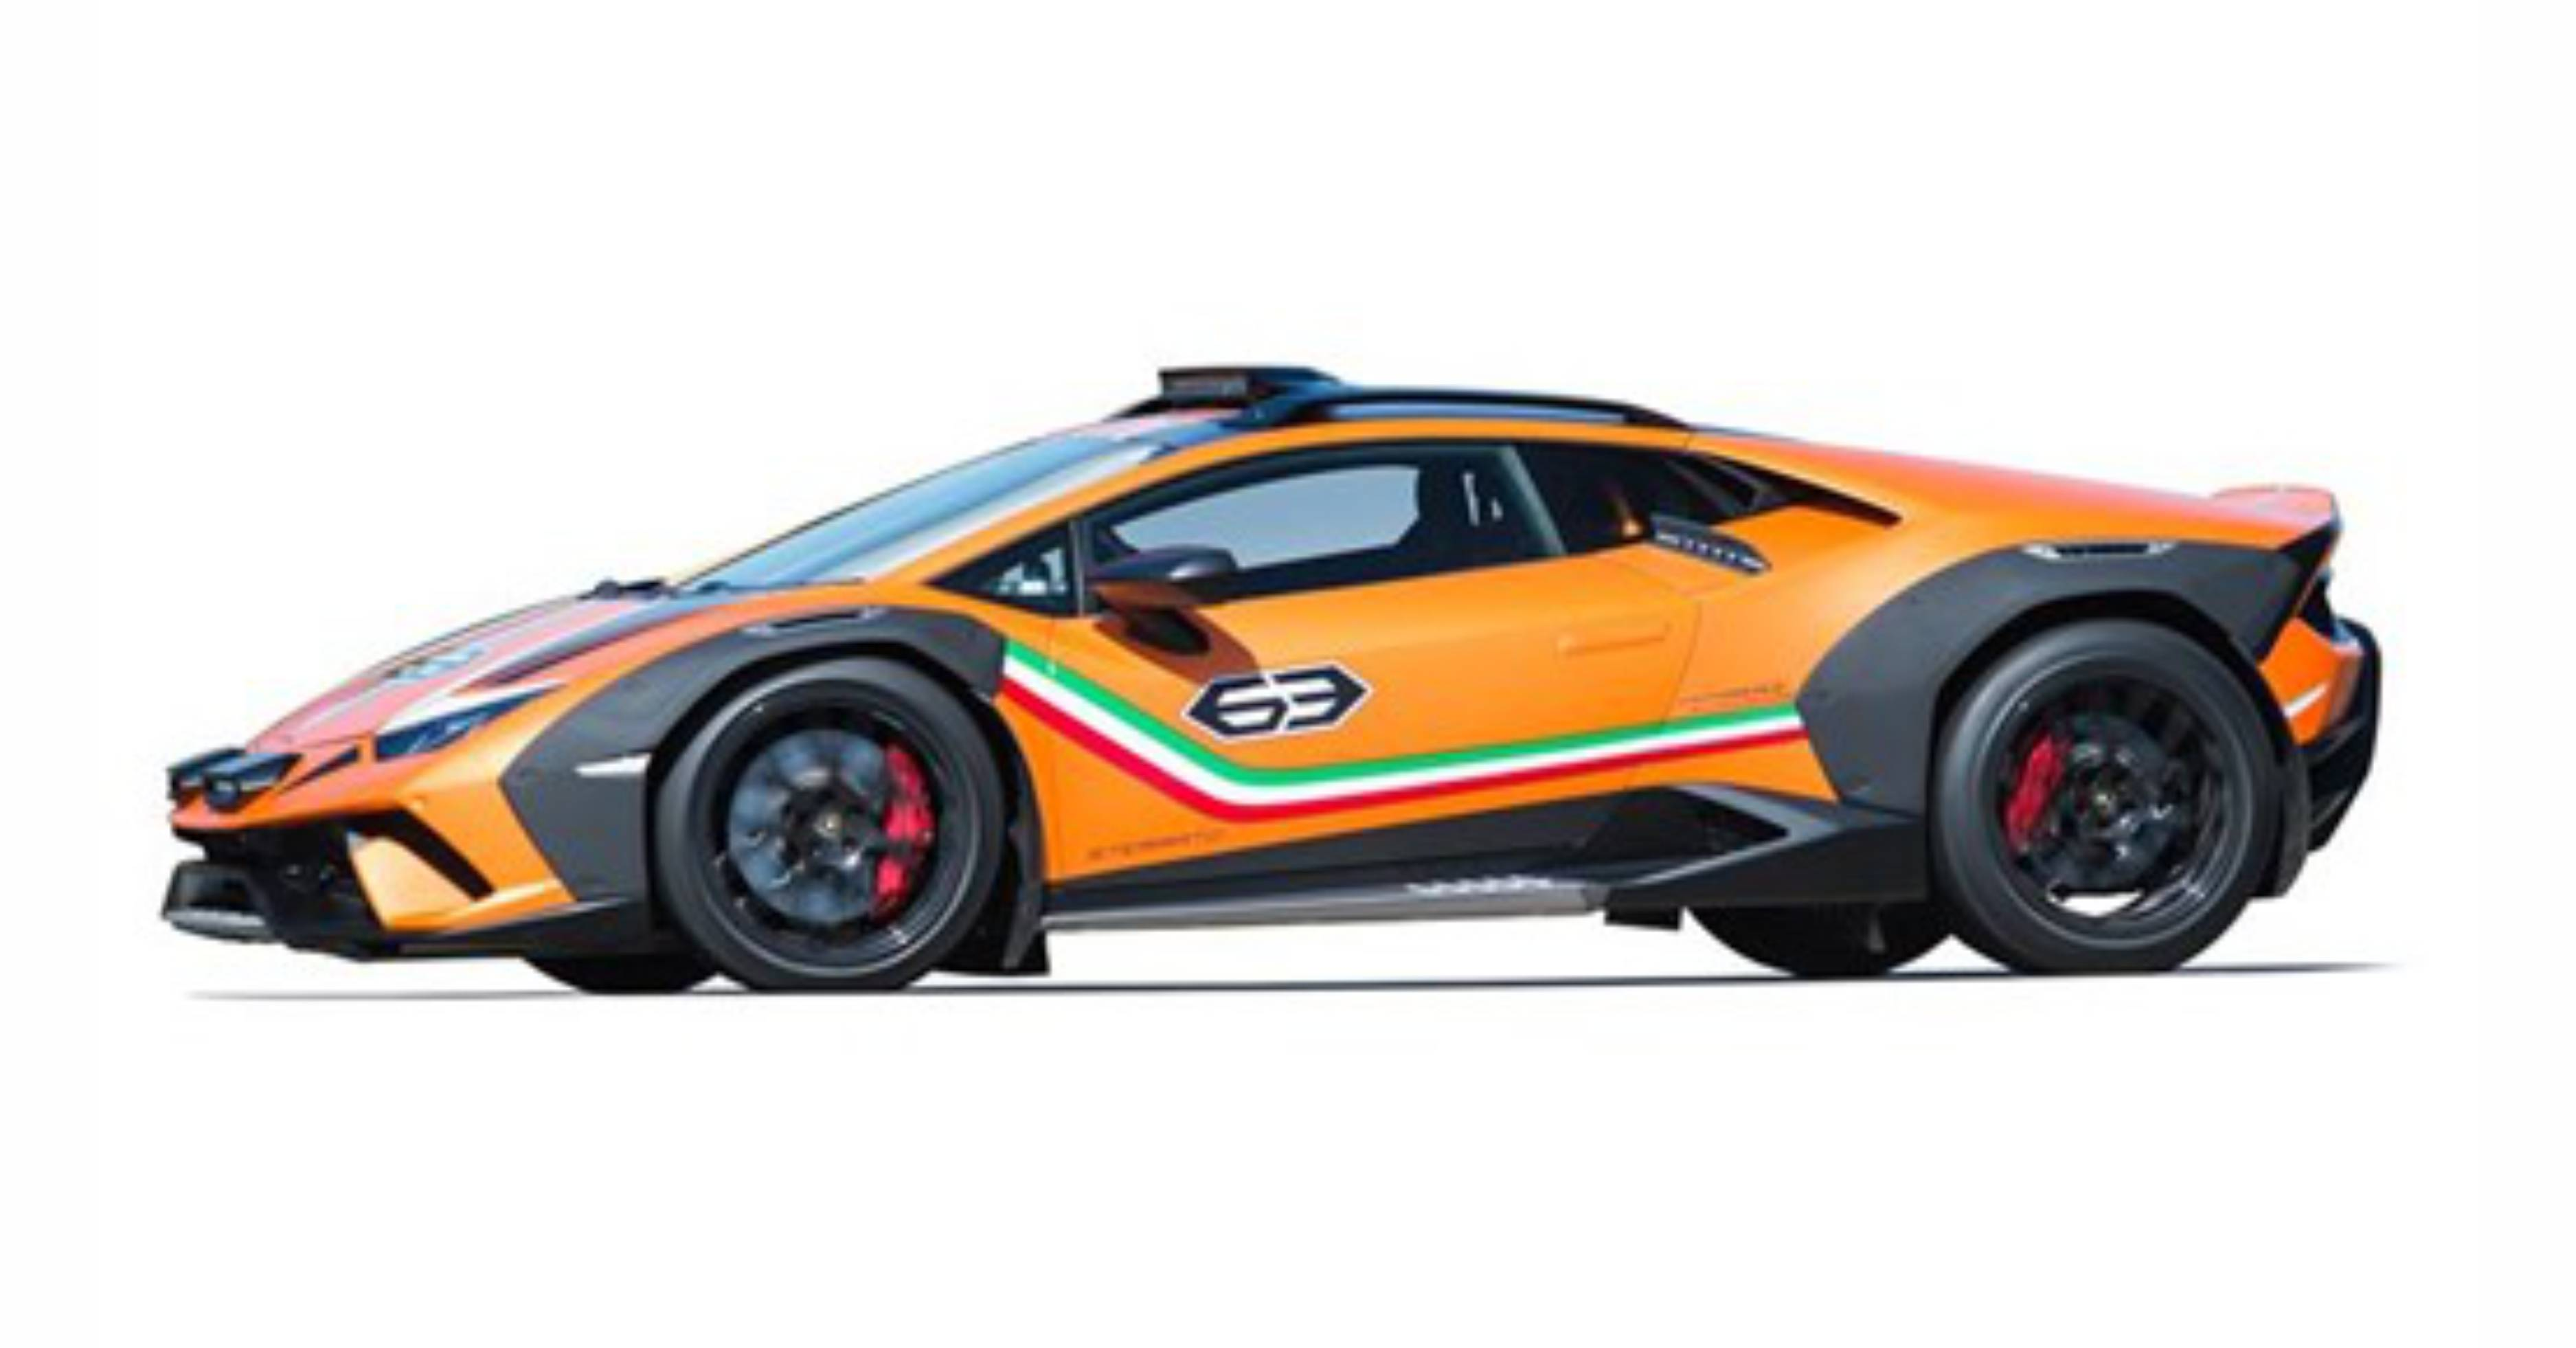 Lamborghini Getting Ready to Introduce Hurac�n Sterrato